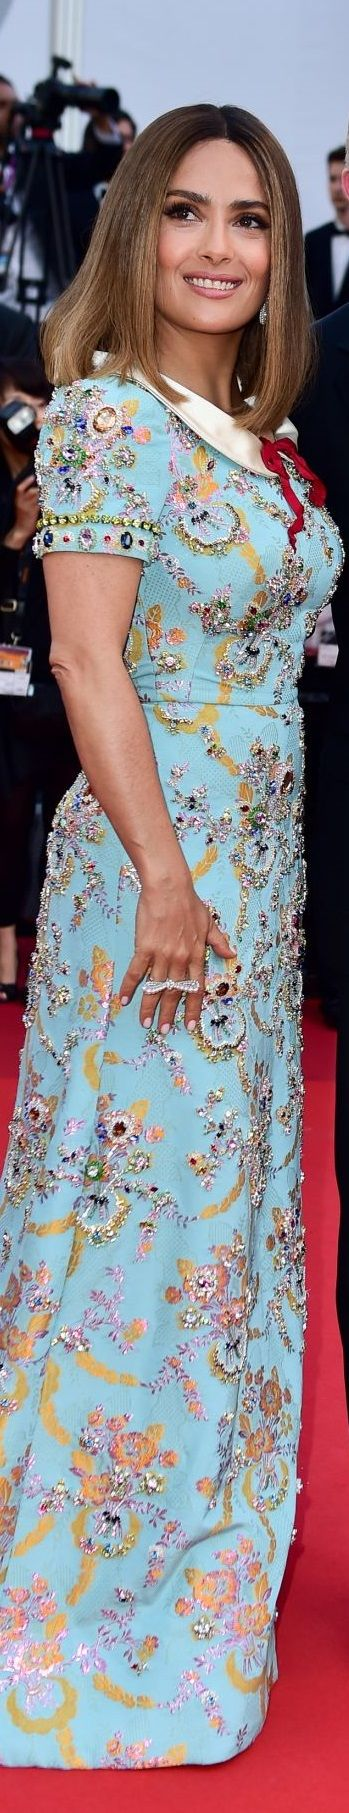 Salma Hayek in Gucci Cannes Film Festival 2017